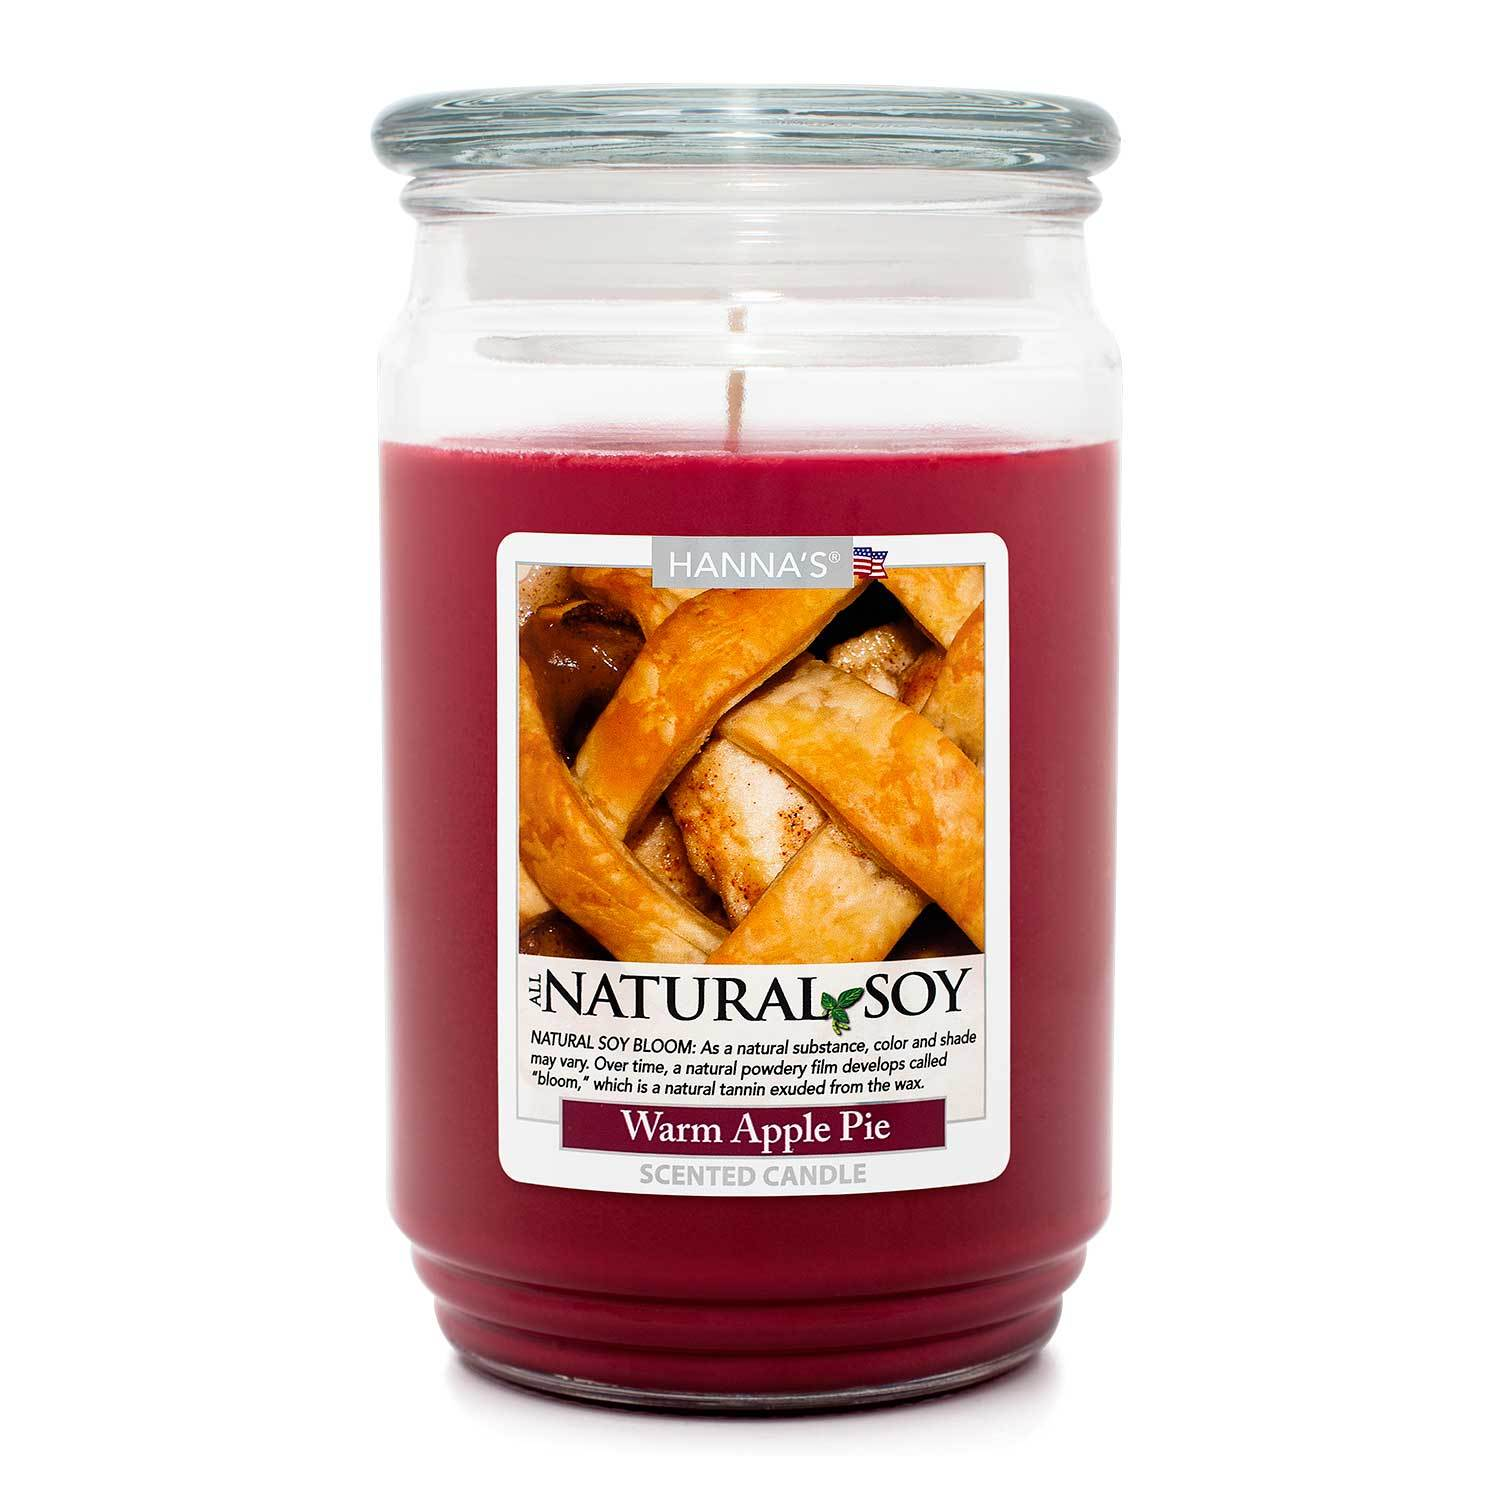 Natural Soy Warm Apple Pie Scented Soy Candle - Candlemart.com